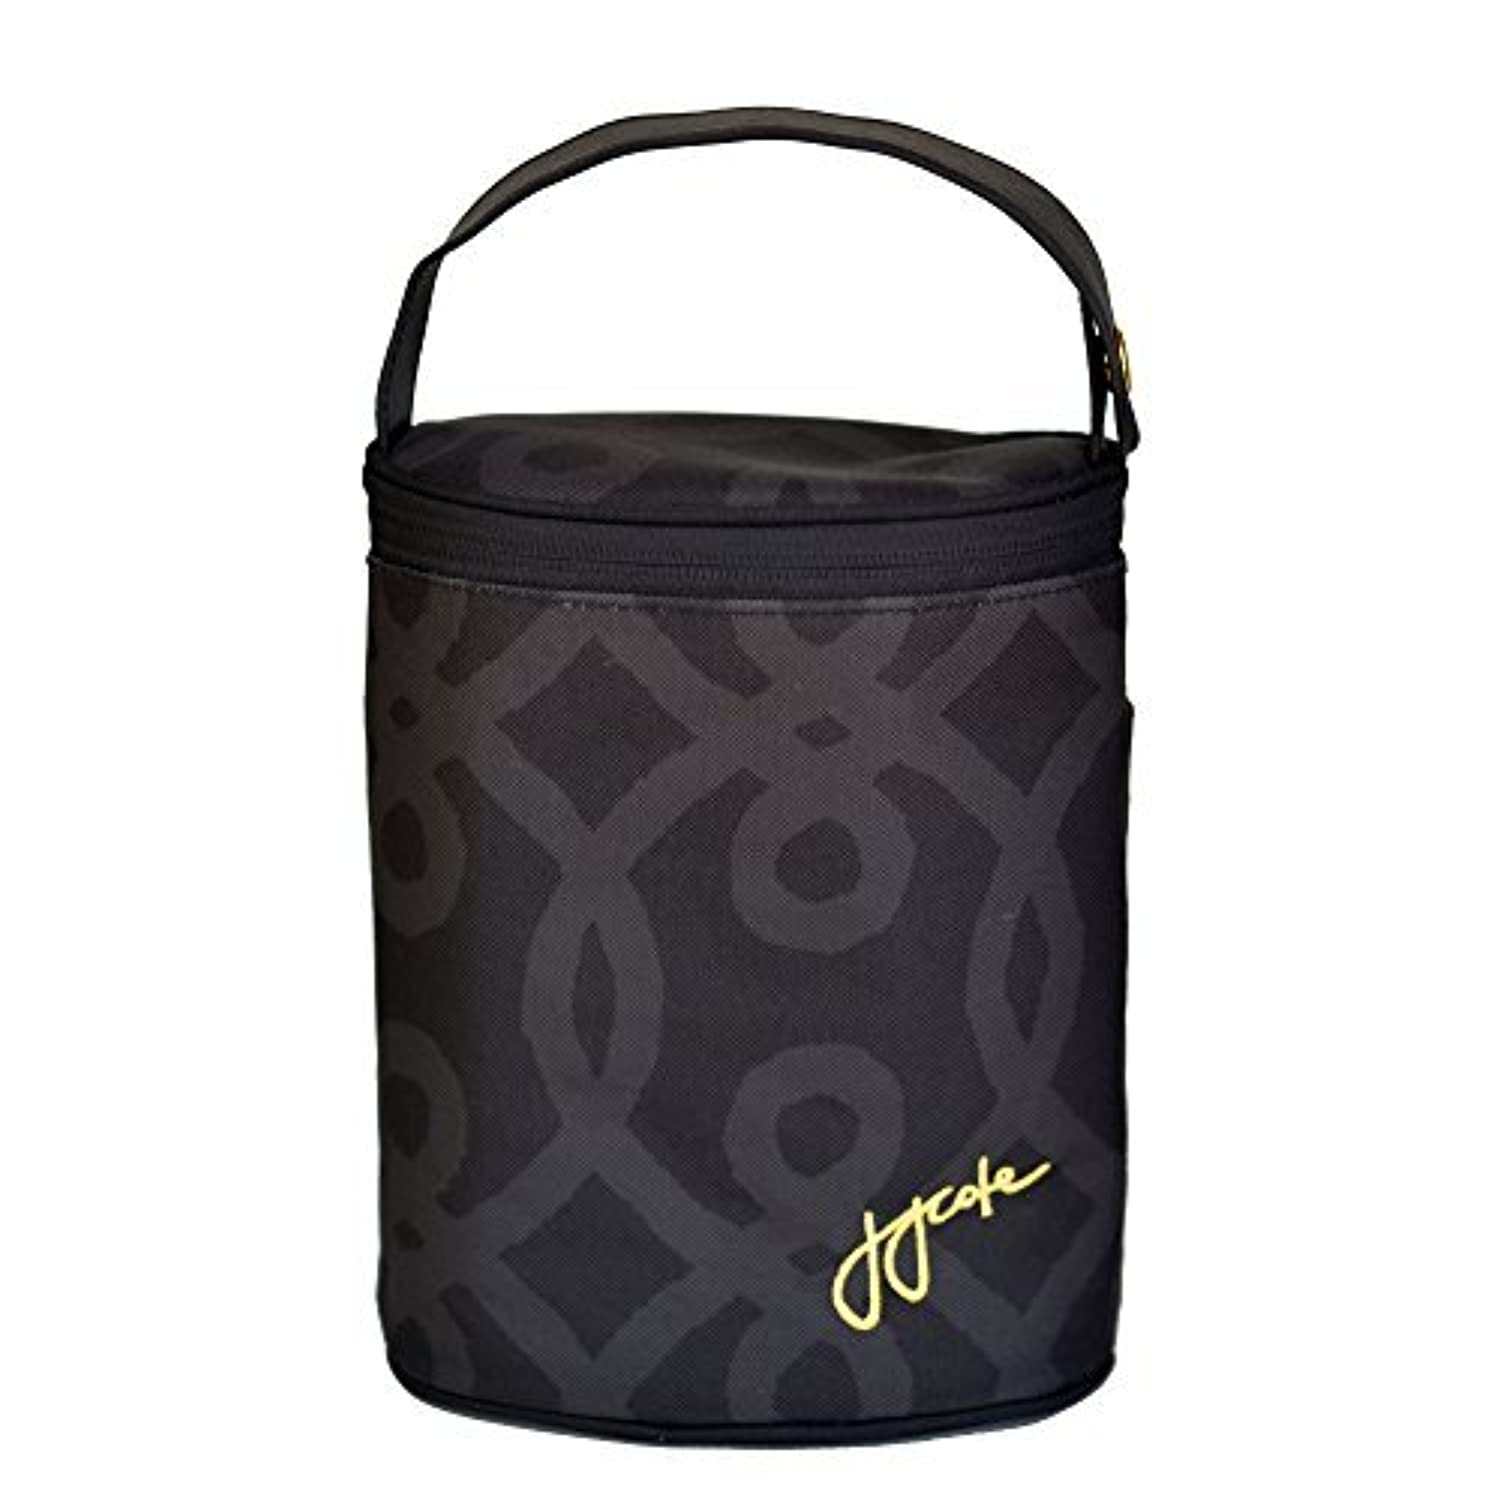 JJ Cole Bottle Cooler, Black and Gold by JJ Cole [並行輸入品]